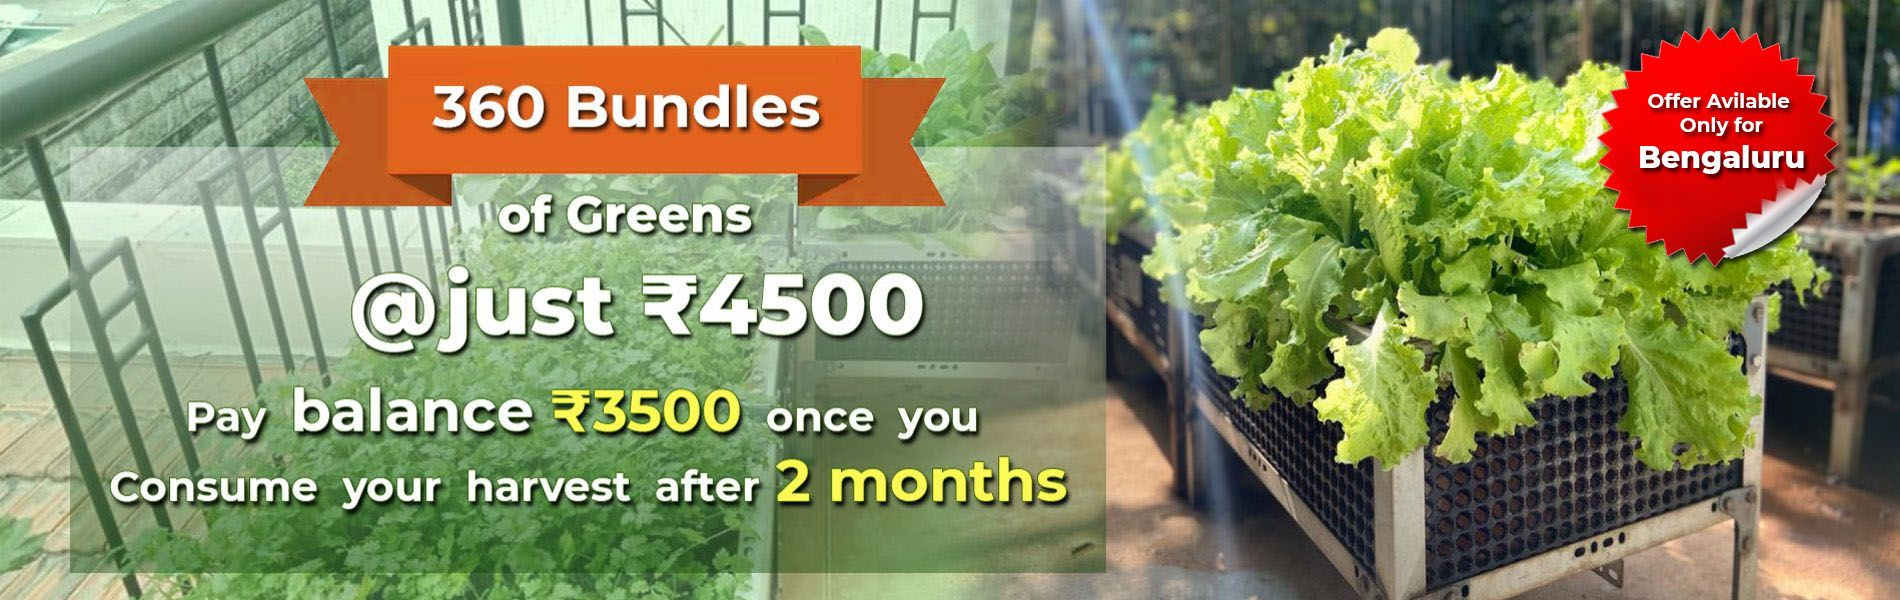 https://www.mydreamgarden.in/mdg-new-initiative-garden-at-just-rs-4500/mdg-new-initiative-garden-at-just-rs-4-500.html